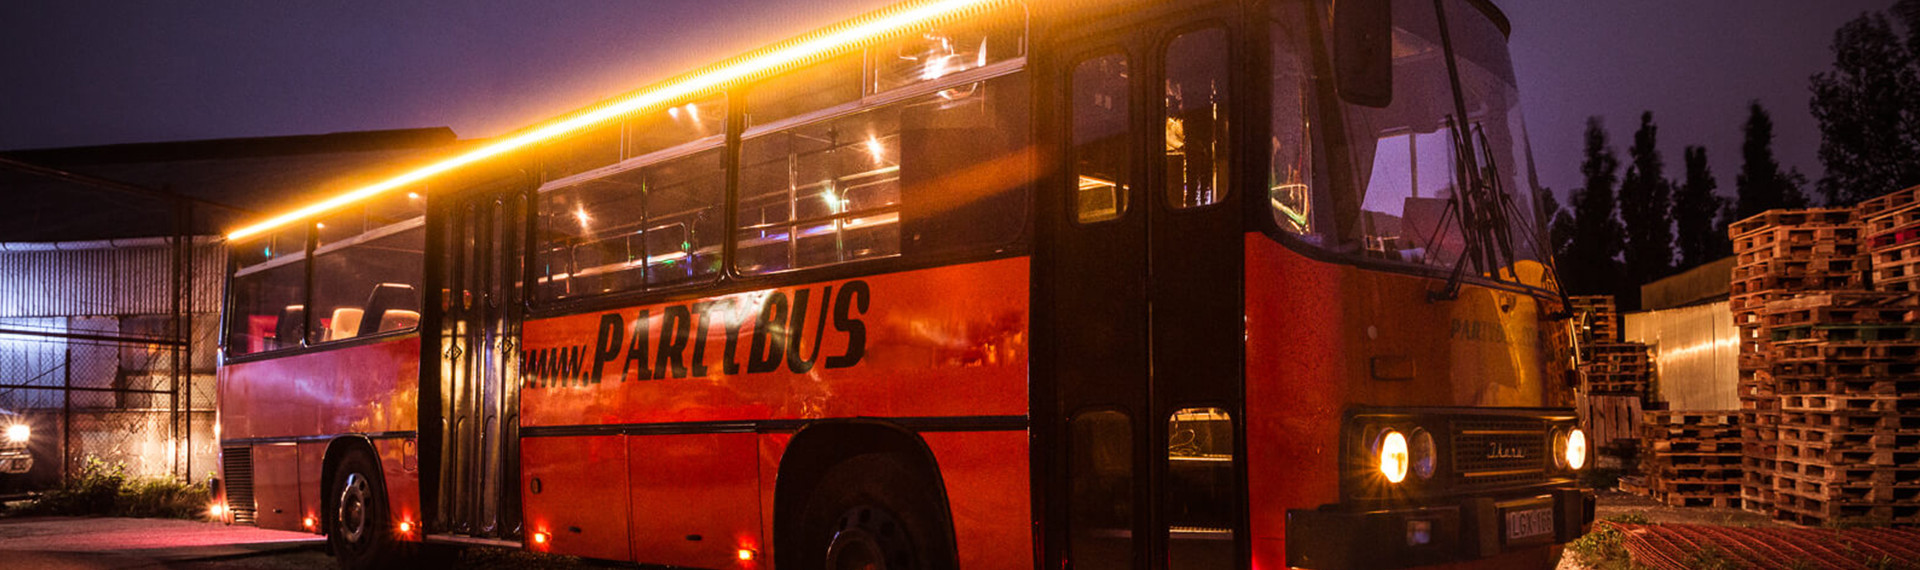 Partybus Amsterdam